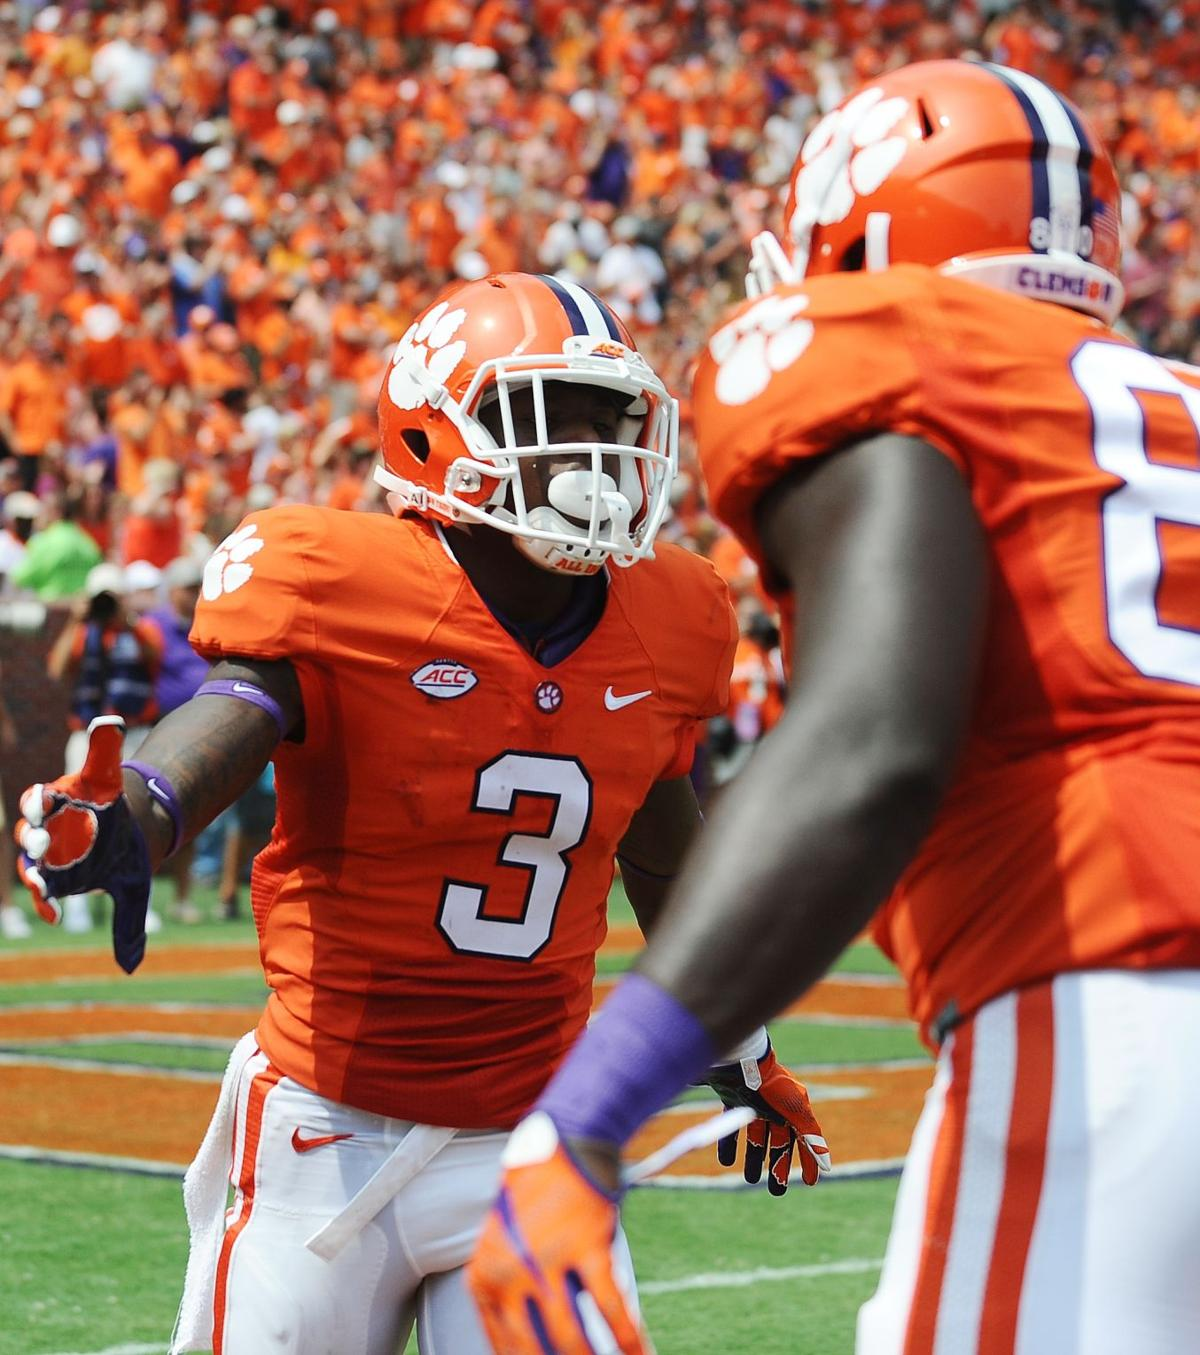 Sapakoff: Ideal incline schedule climb for Clemson